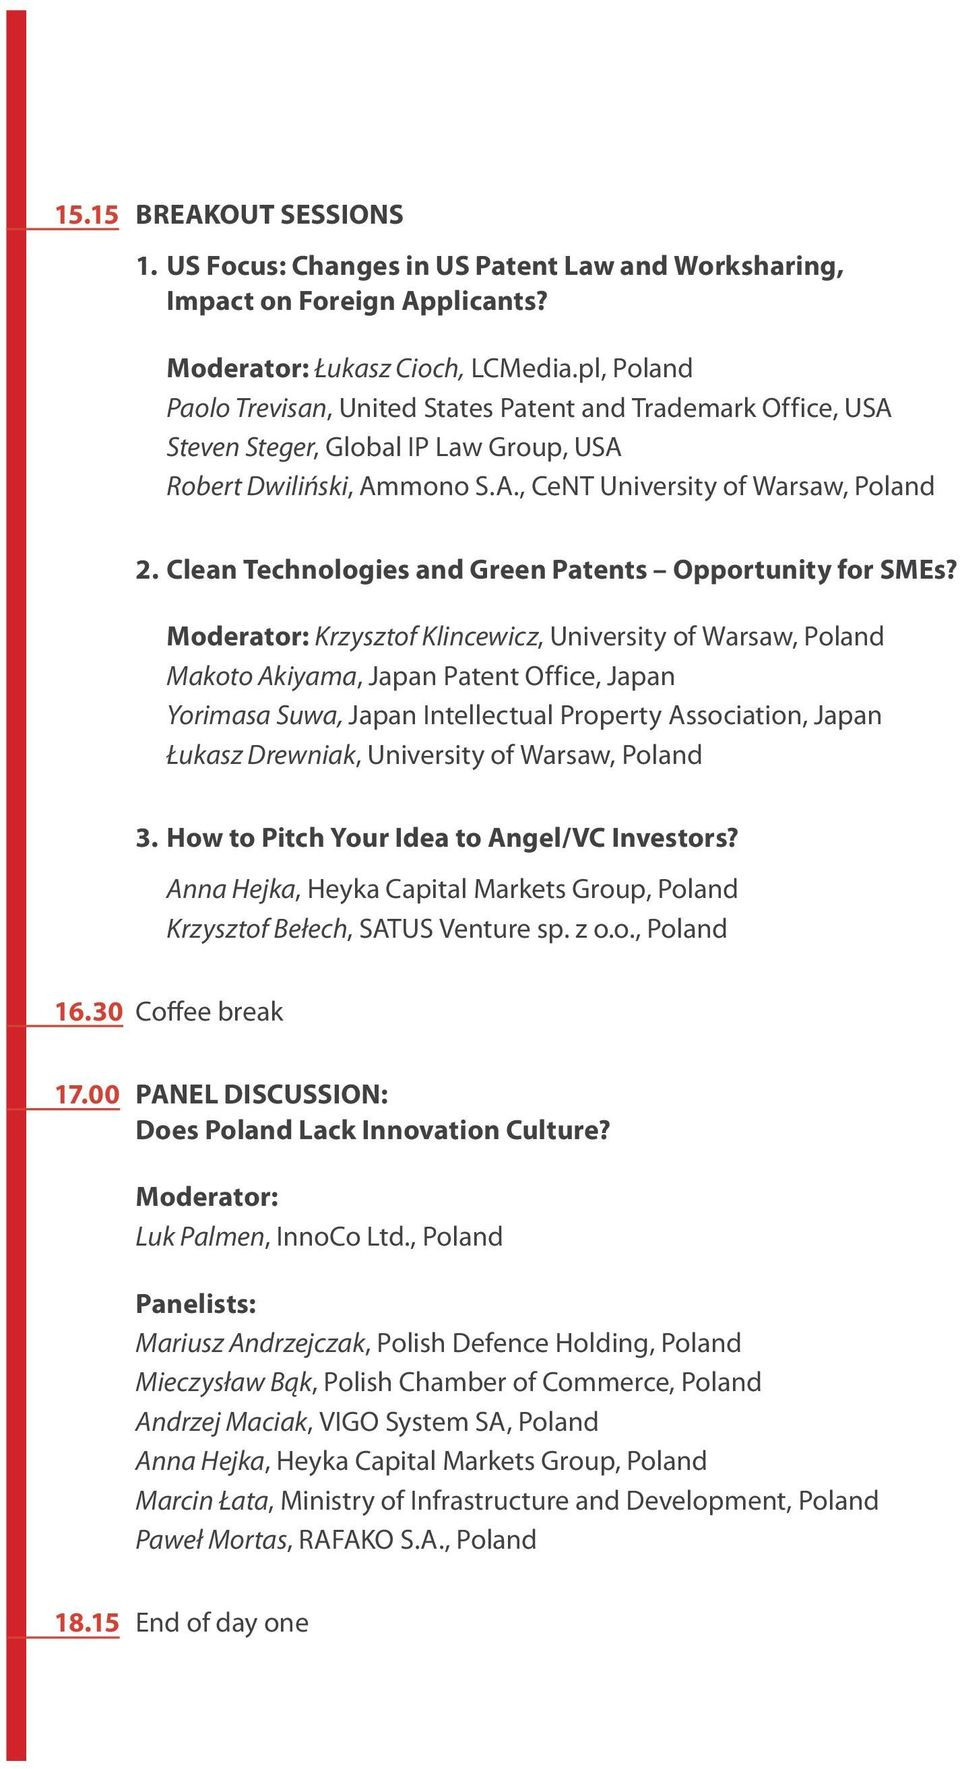 Clean Technologies and Green Patents Opportunity for SMEs?